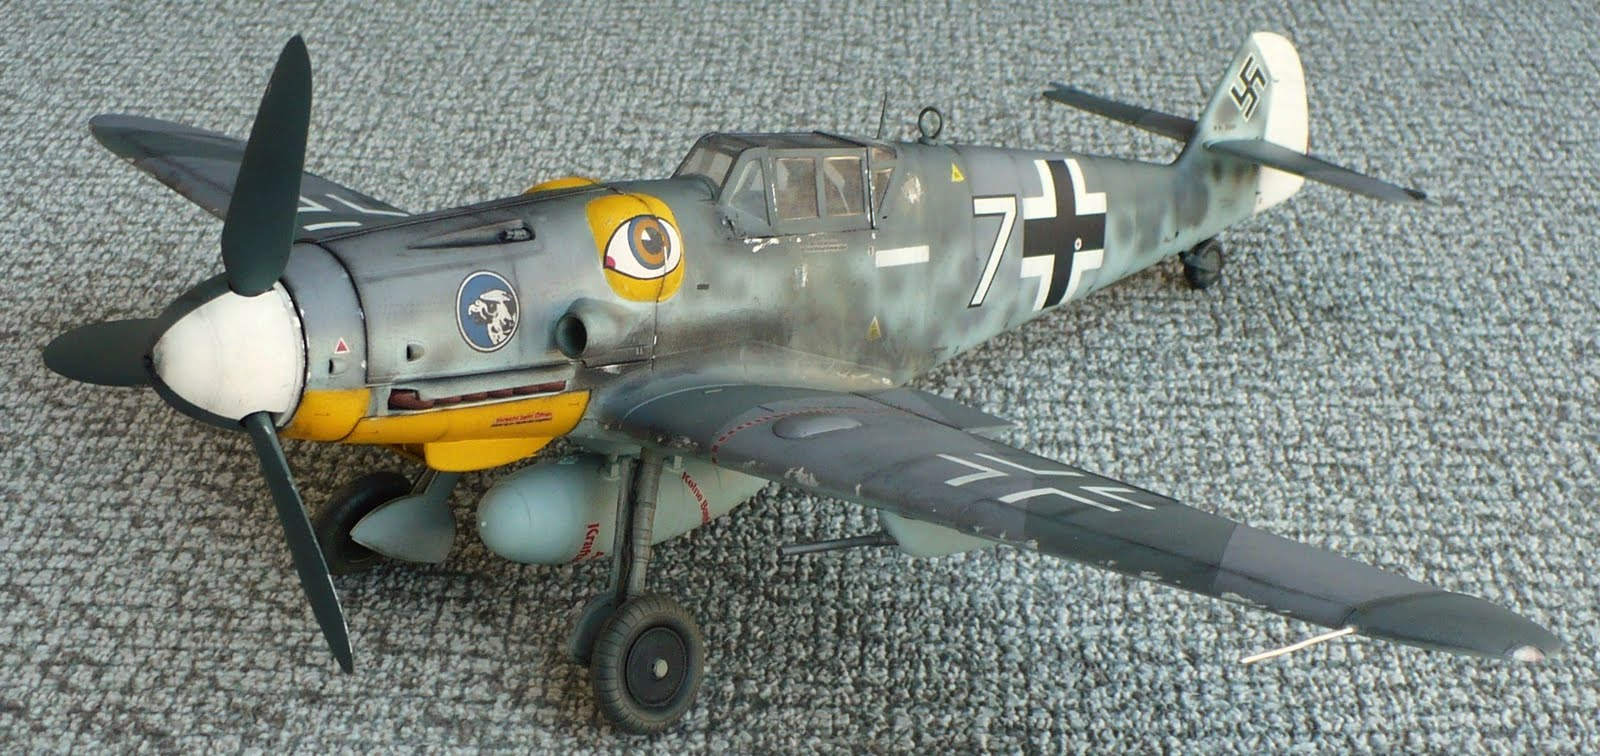 The Great Canadian Model Builders Web Page BF 109 G6 Re Post